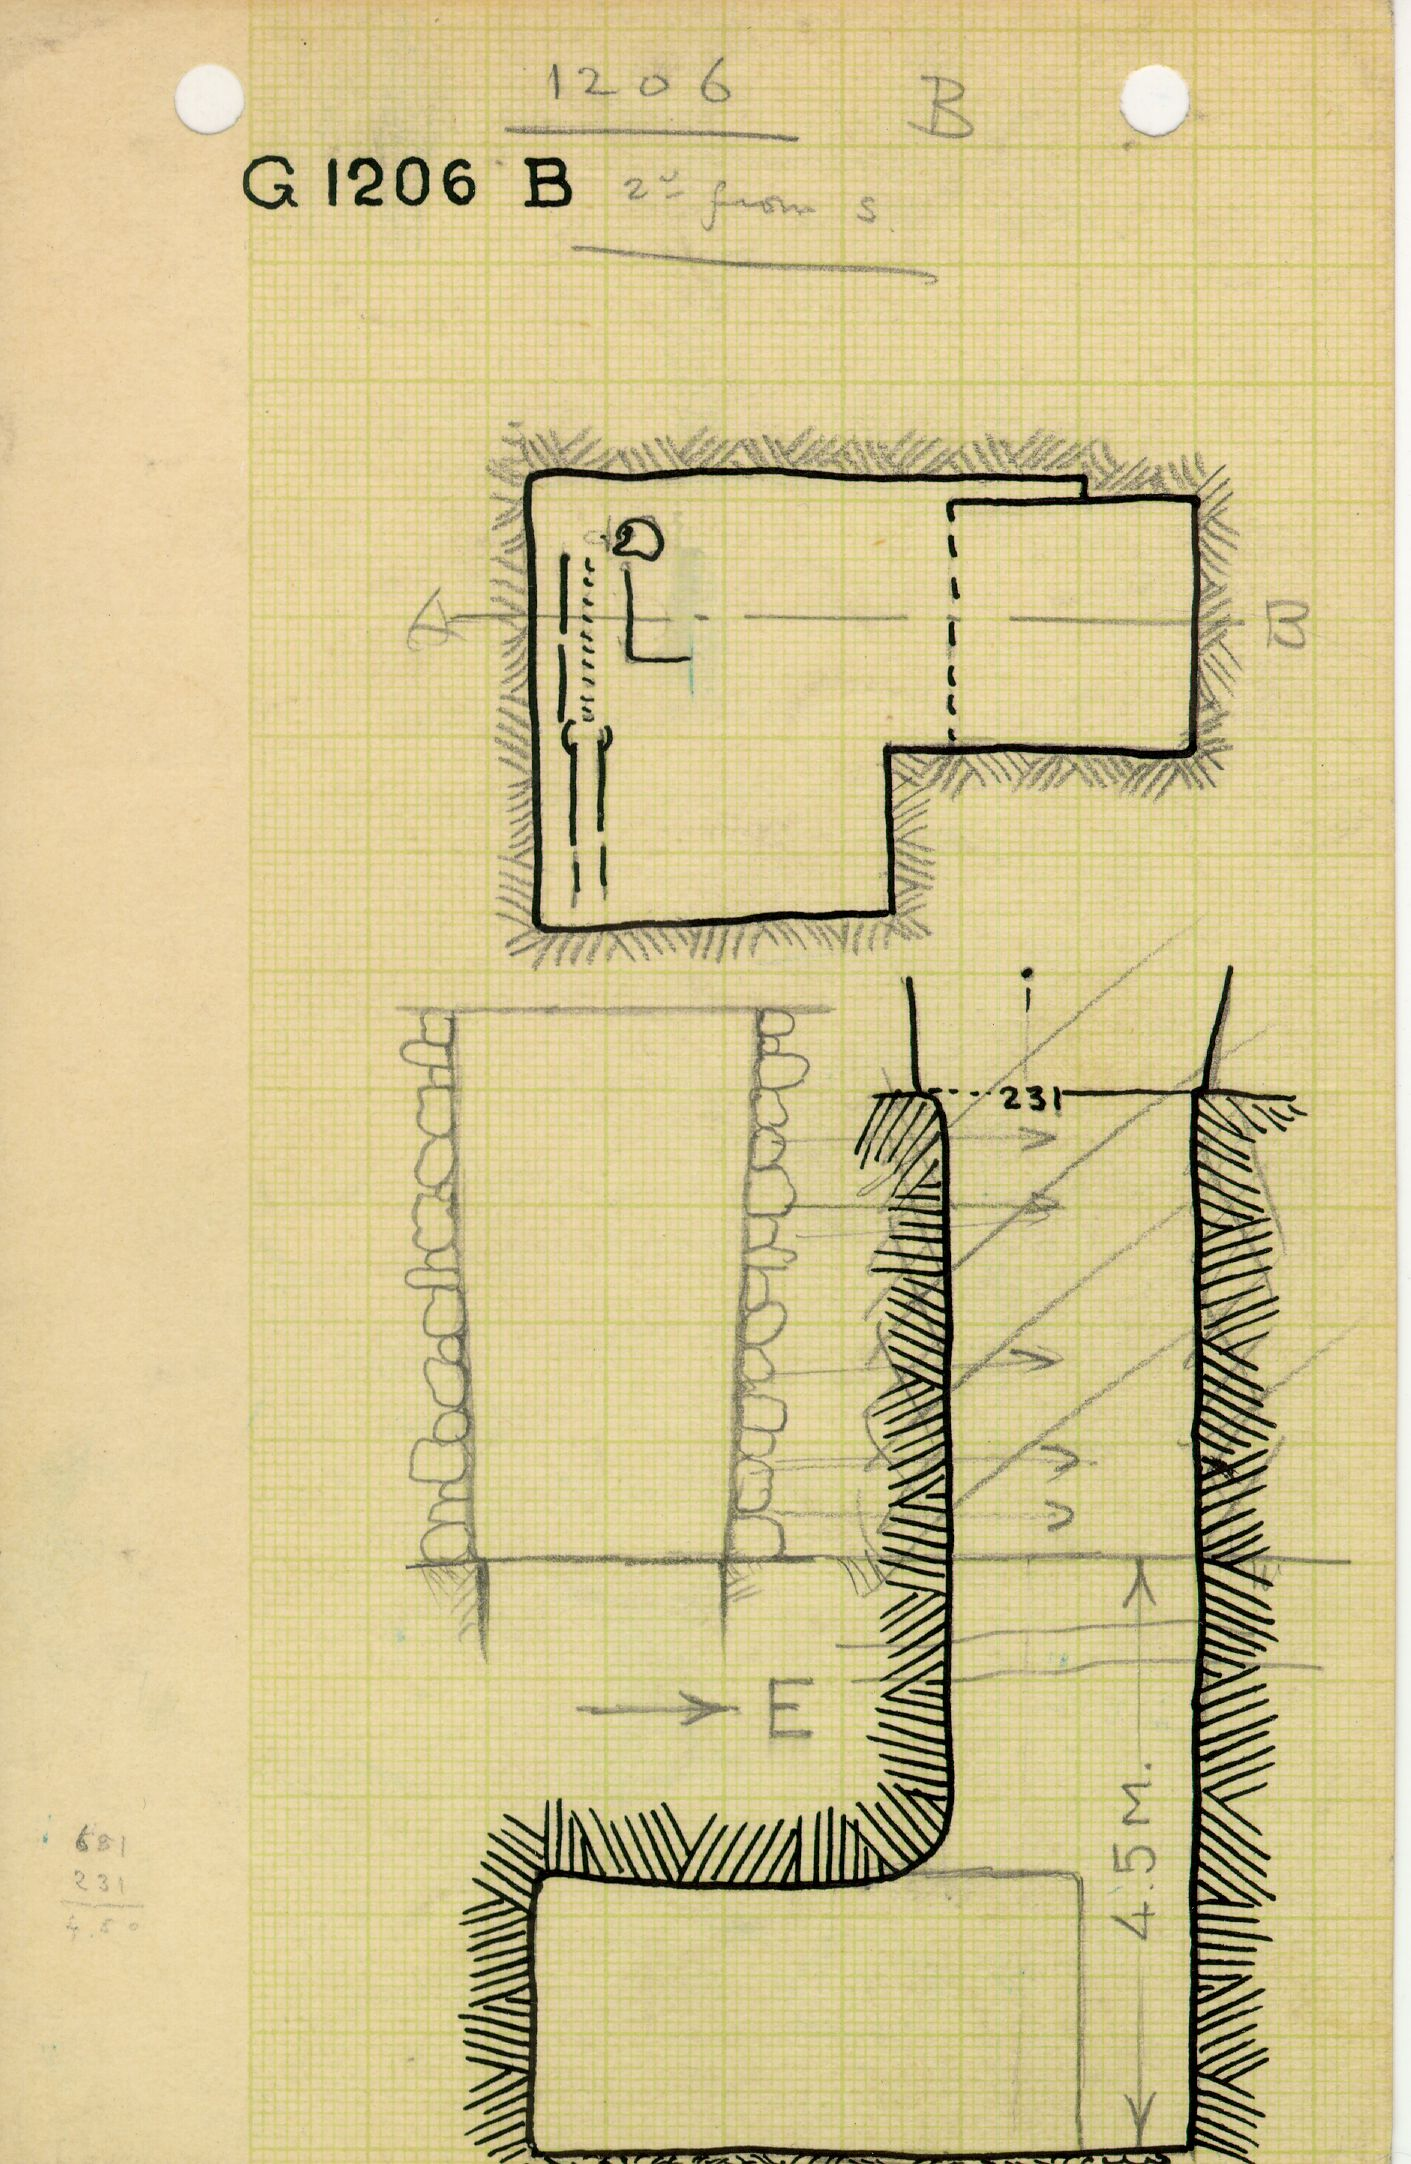 Maps and plans: G 1206, Shaft B